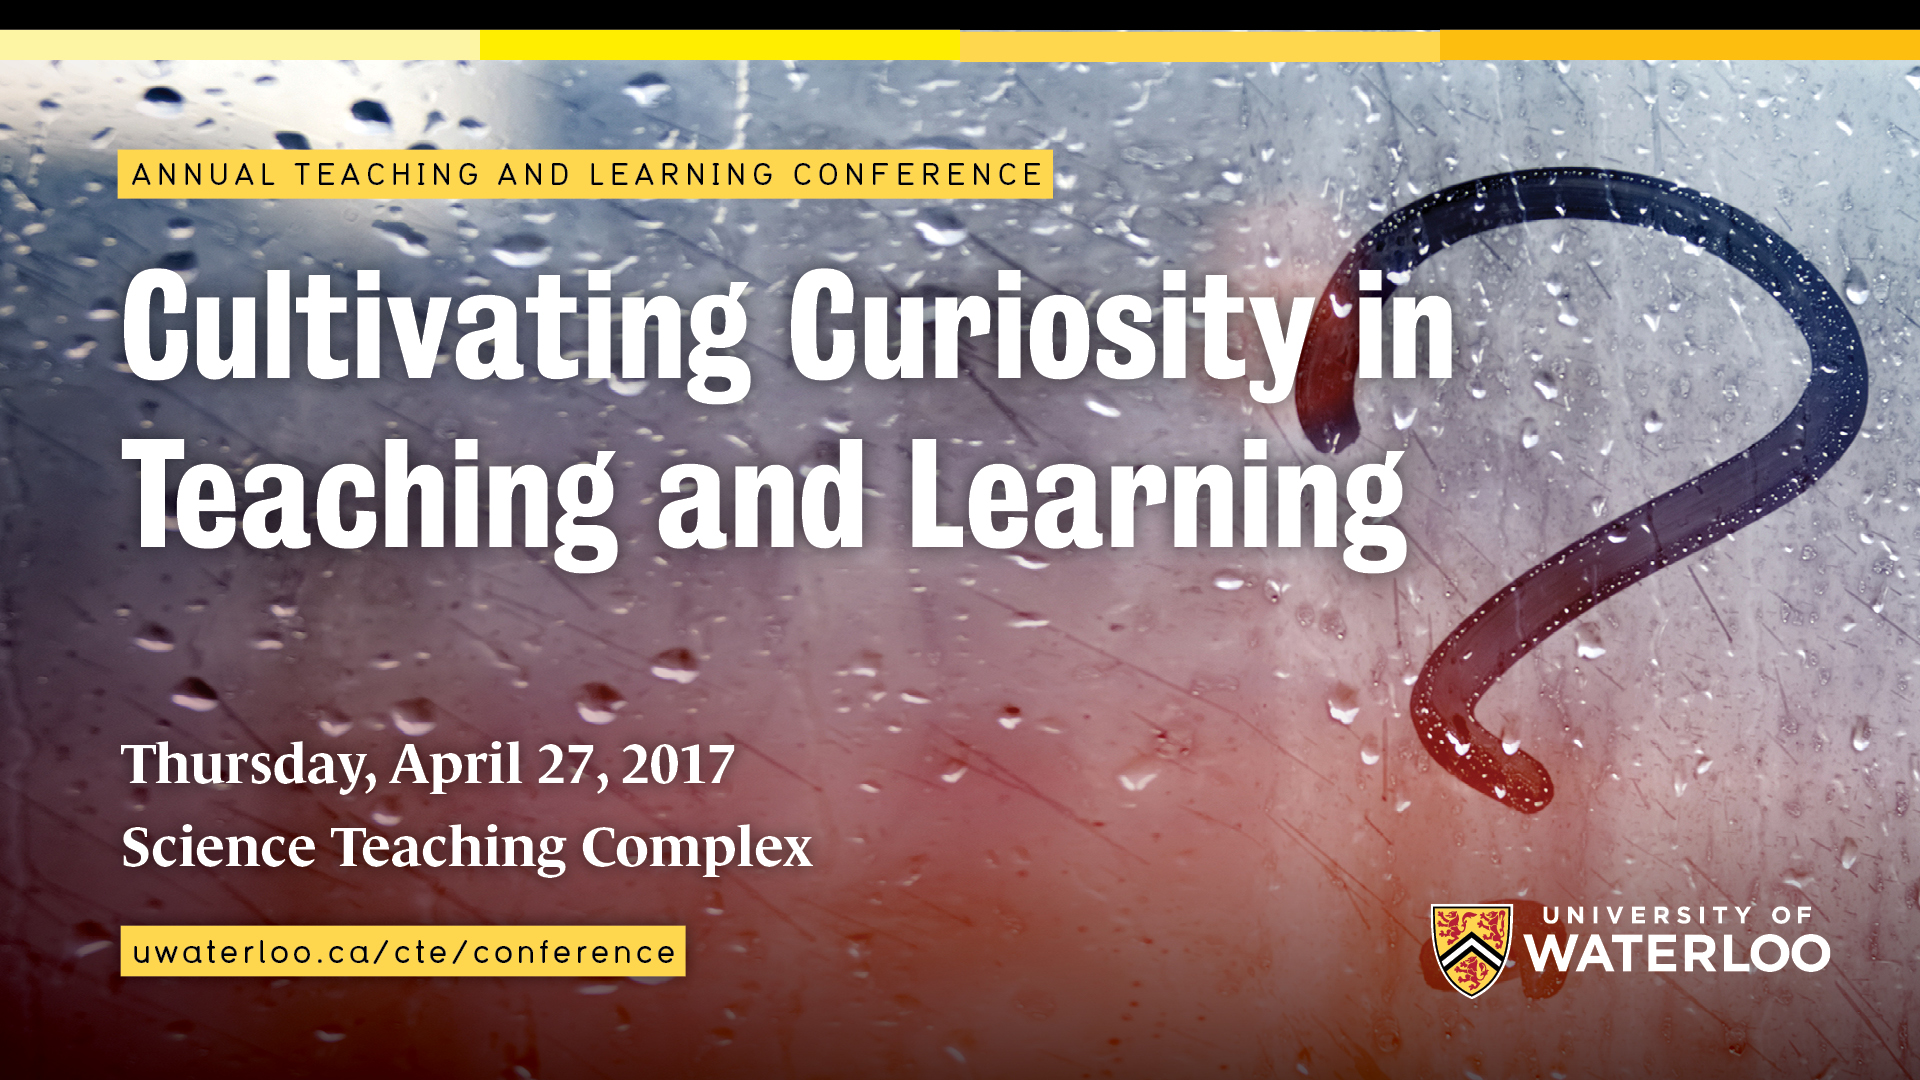 Conference title (Cultivating Curiosity in Teaching and Learning) superimposed over a question mark.